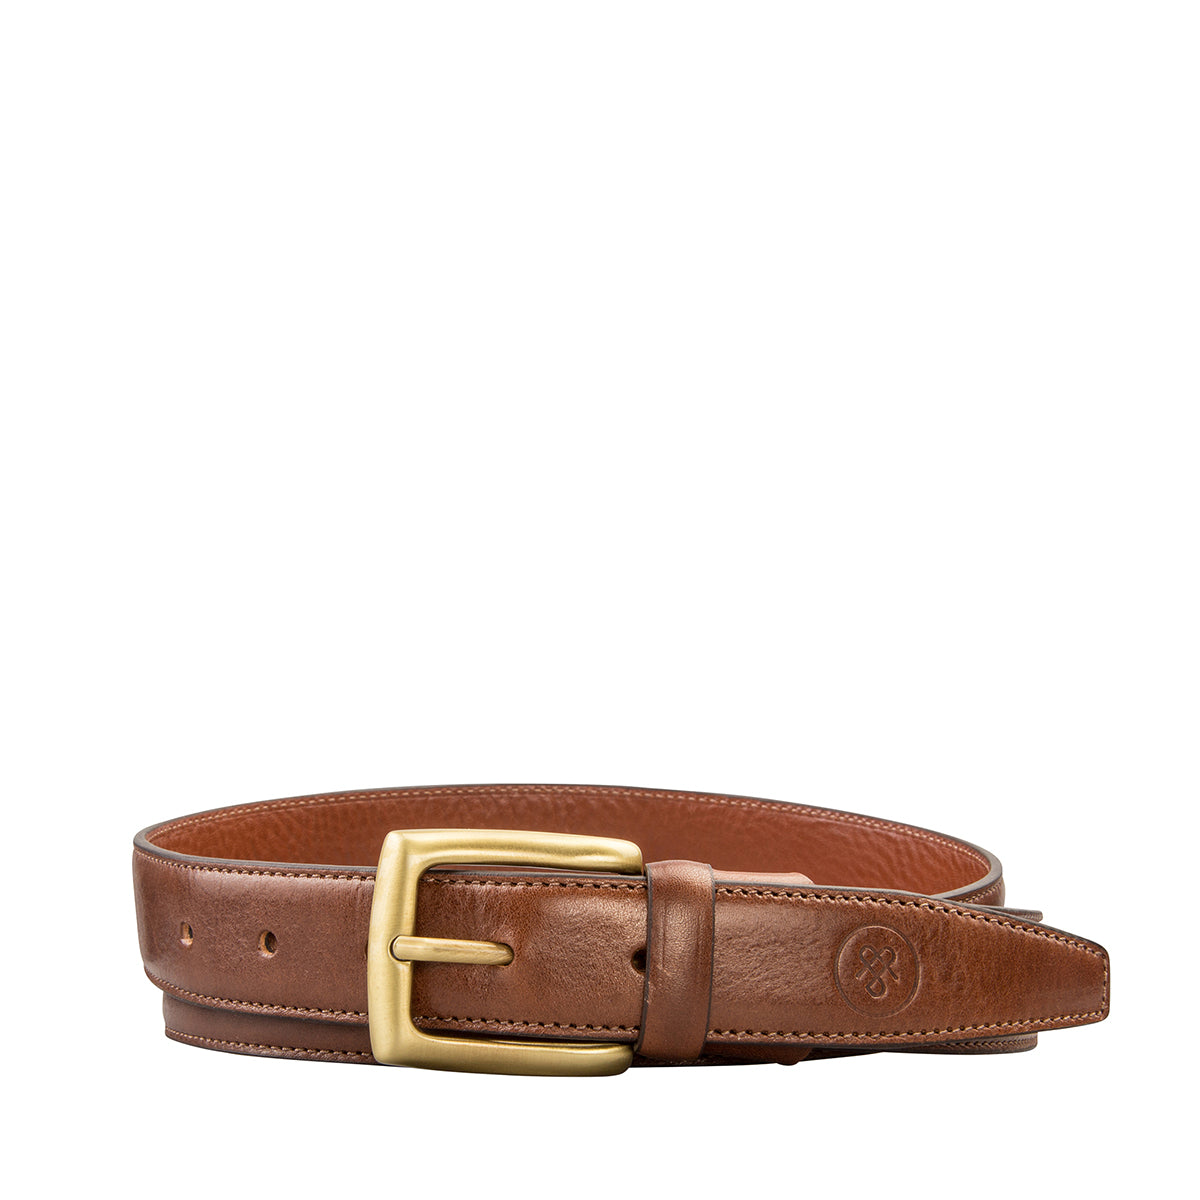 Image 2 of the 'Gianni' Chestnut Veg-Tanned Leather Handmade Belt